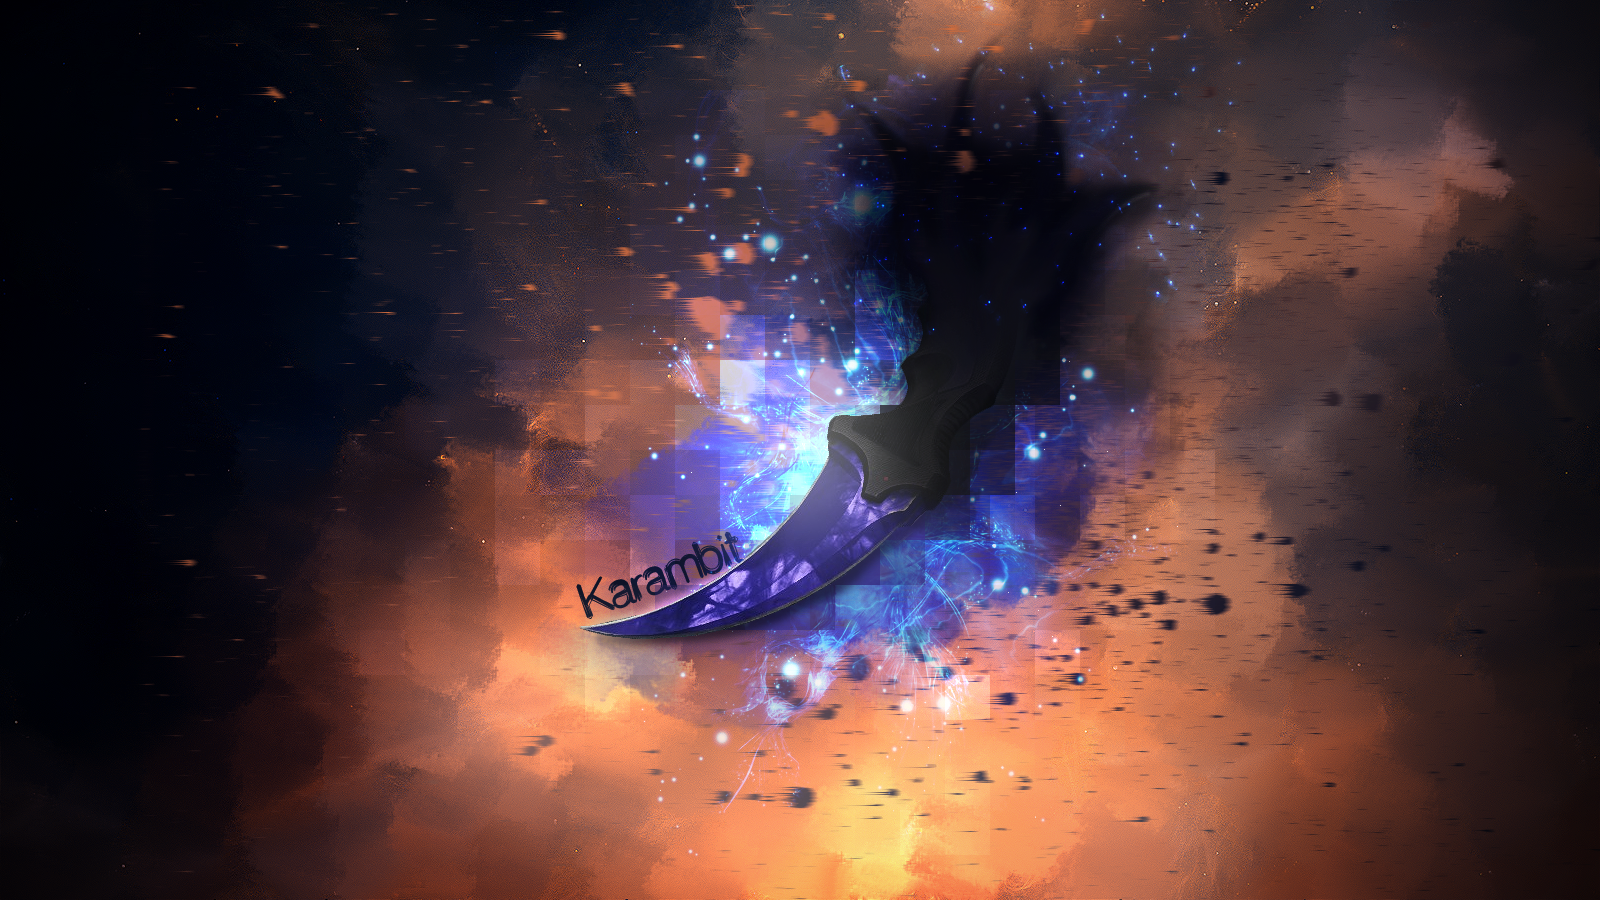 With Text Csgo Knife Wallpaper Hd 1420887 Hd